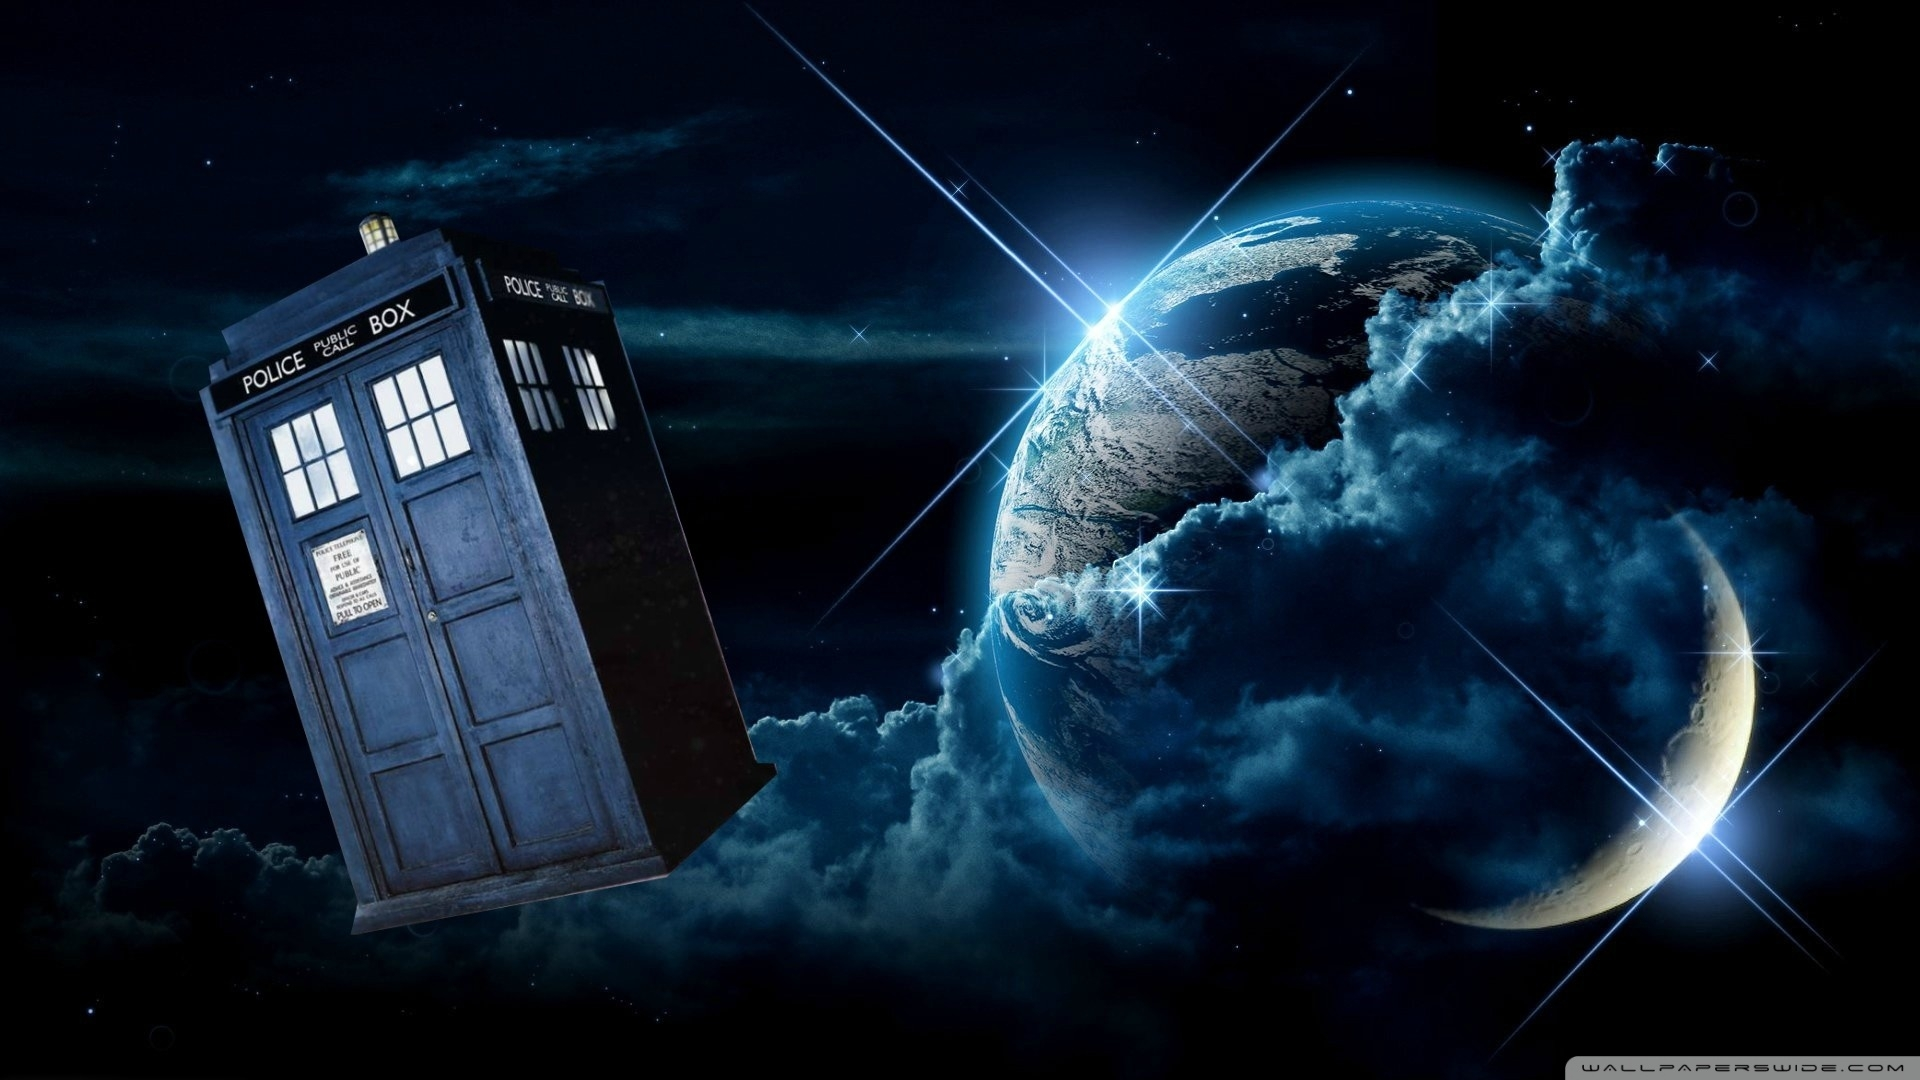 doctor who tardis ❤ 4k hd desktop wallpaper for 4k ultra hd tv